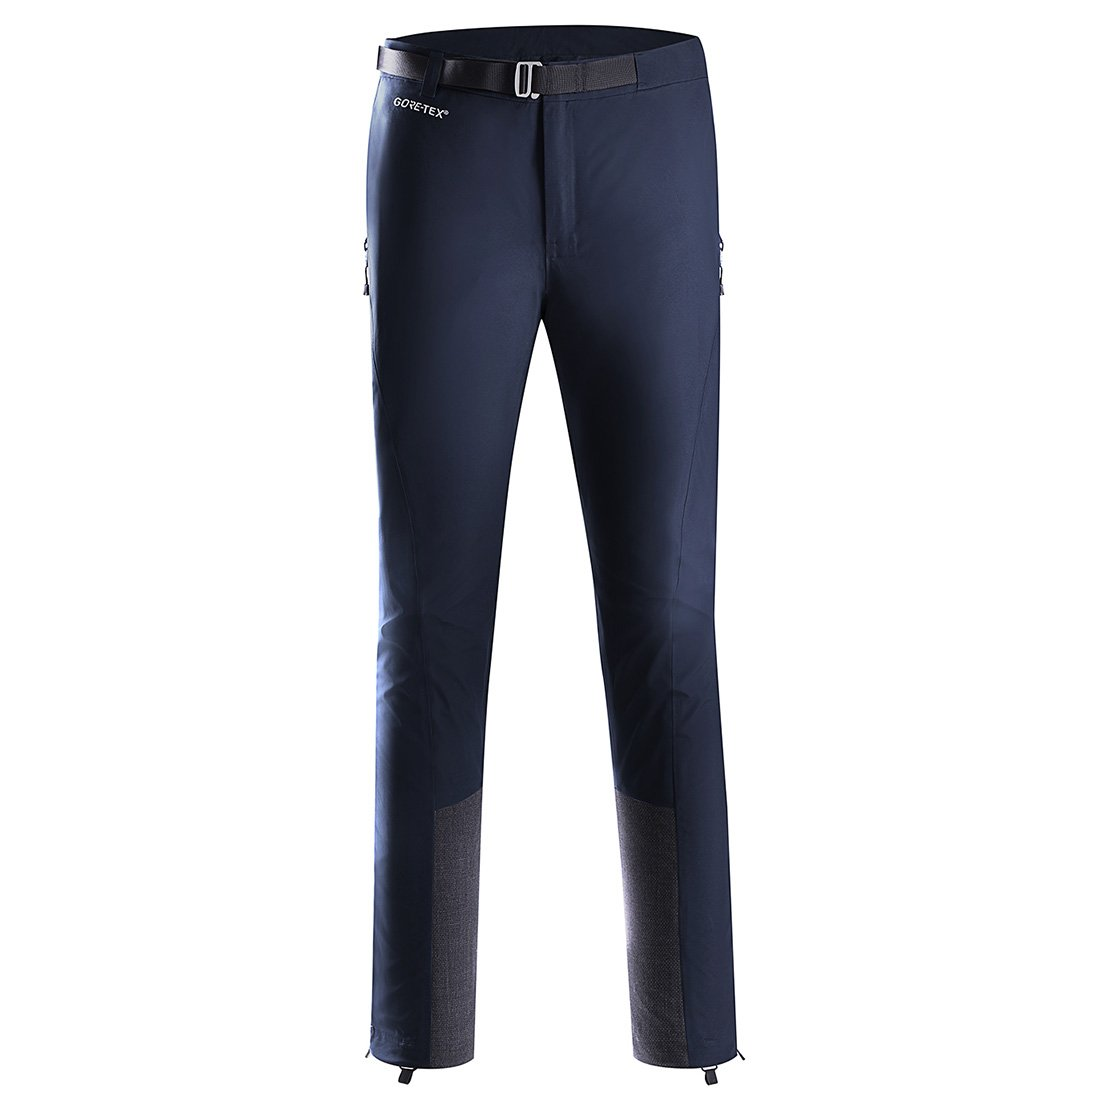 KAILAS Gore-TEX Mont Hardshell Pants Mens for Climbing Hiking Trekking Sports Casual